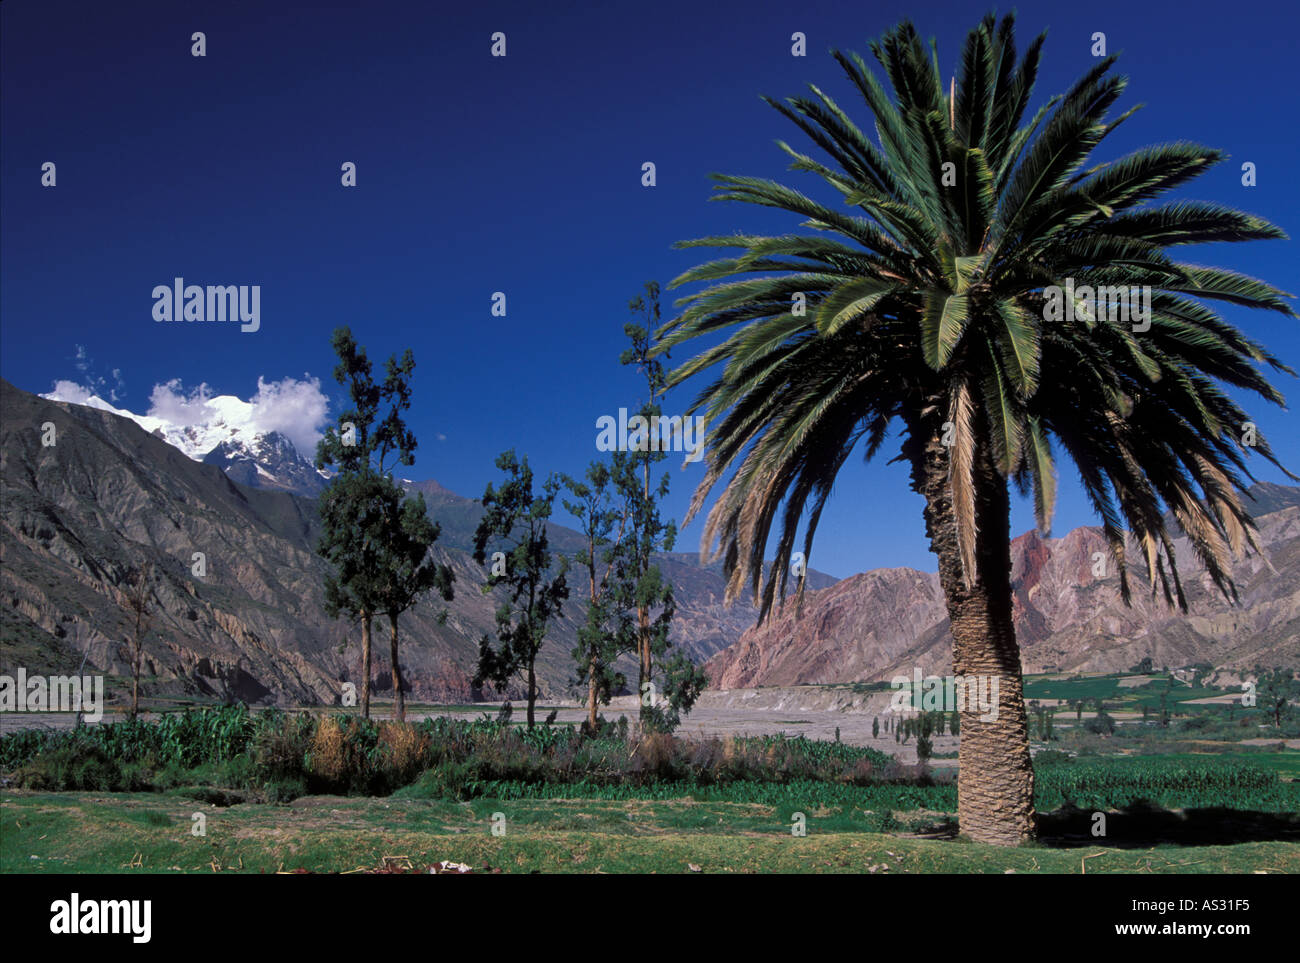 Rio Abajo valley below La Paz with Palmtree and snowcovered Mount Ilimani Bolivia - Stock Image